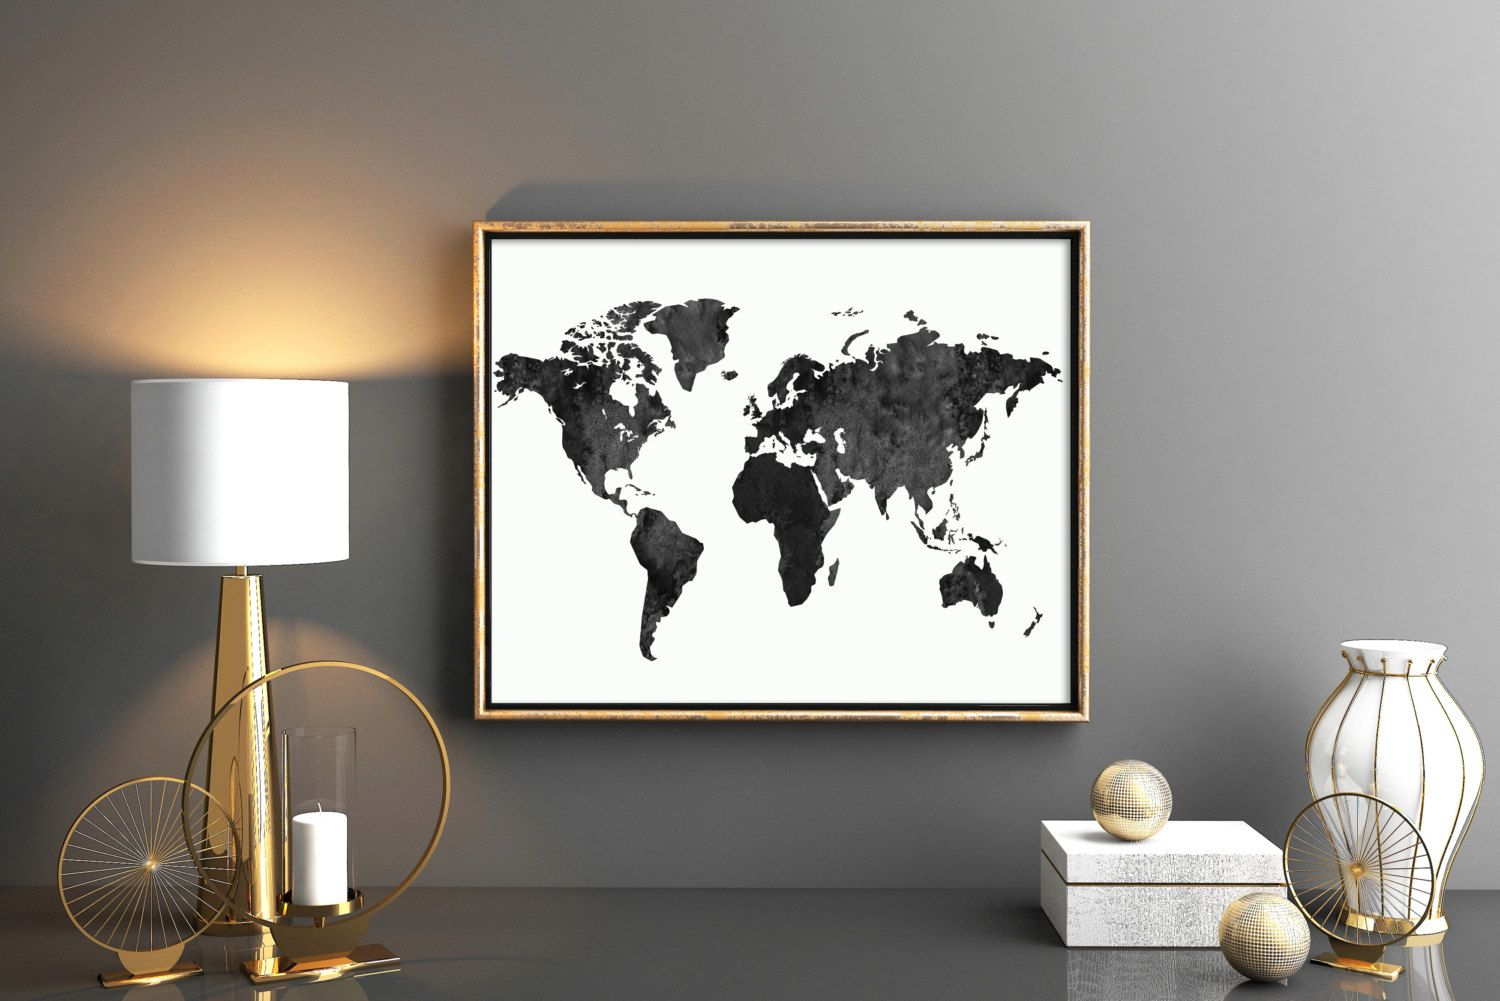 Black and white world map large world map black watercolor world black and white world map large world map black watercolor world map world map printable world map download map artwork 24x36 world map gumiabroncs Images